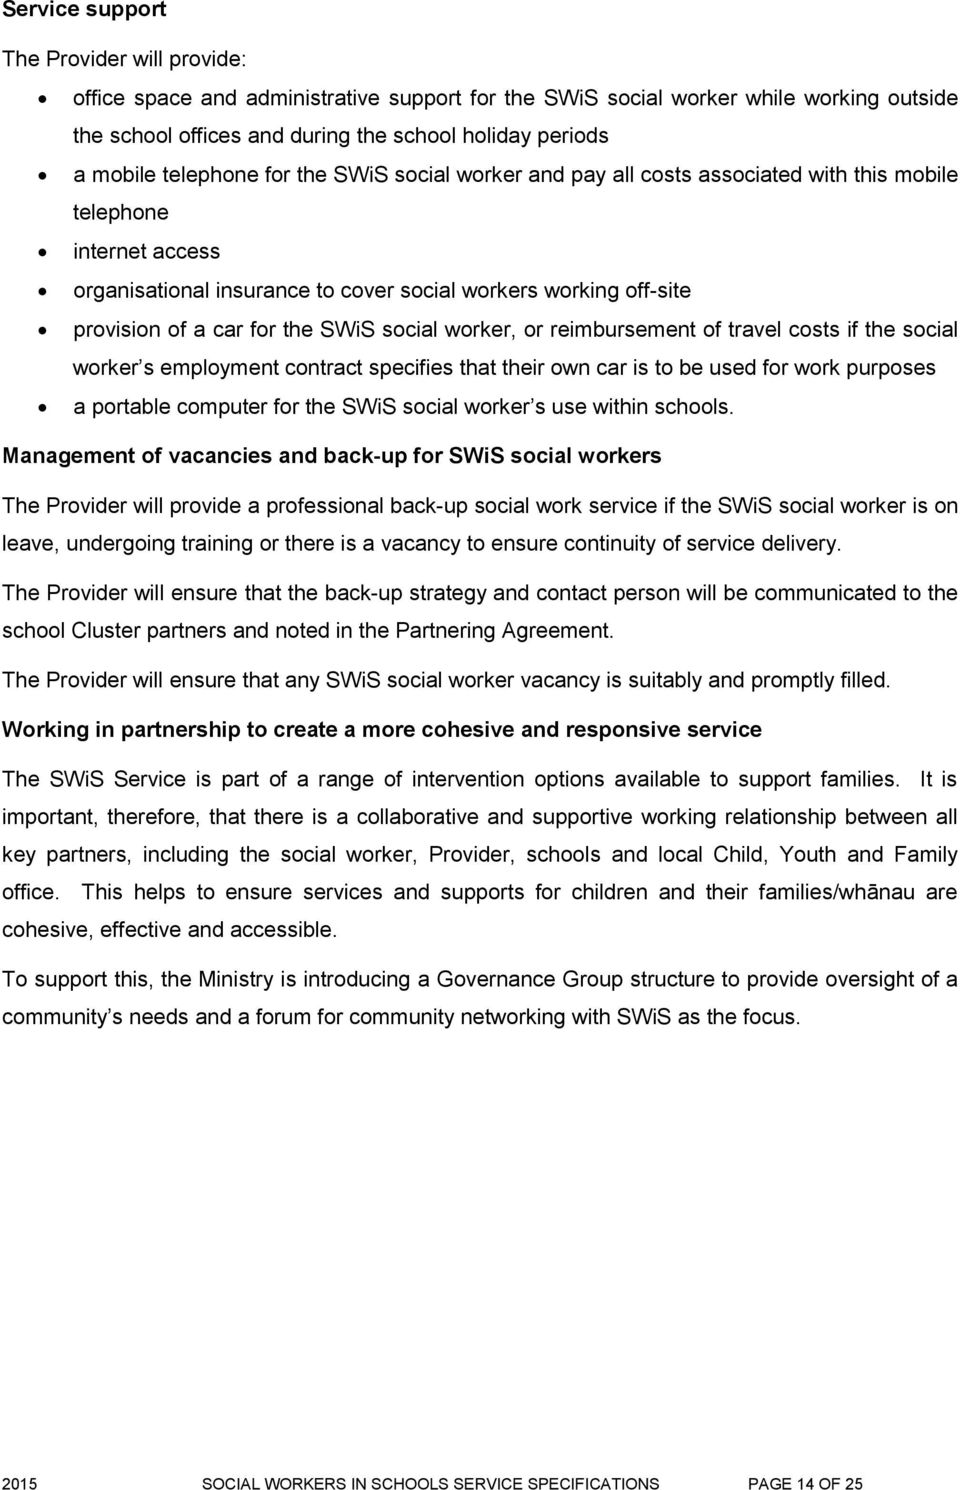 the SWiS social worker, or reimbursement of travel costs if the social worker s employment contract specifies that their own car is to be used for work purposes a portable computer for the SWiS